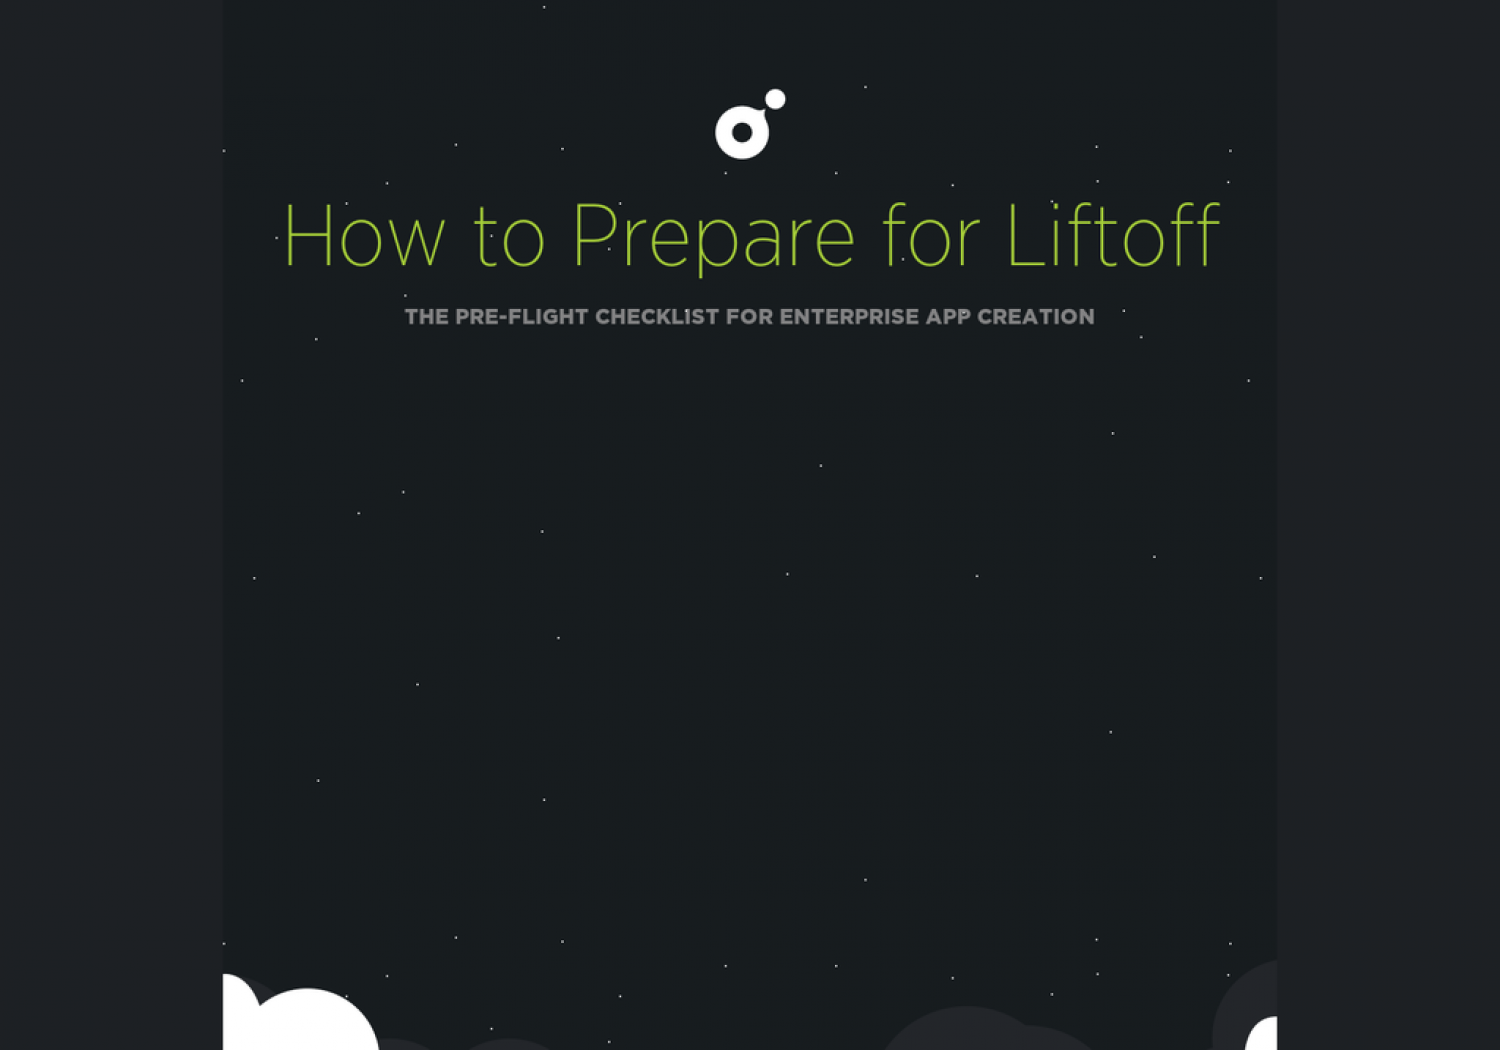 Preparing for Liftoff: The pre-flight checklist for enterprise app creation Infographic